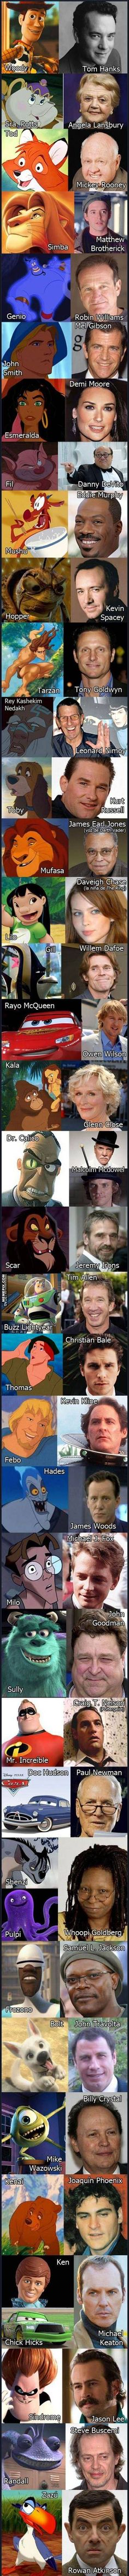 Never realized who some of the voices were<<I'm freaking out right here, now I want to watch all da movies and see if I can recognize their voice.